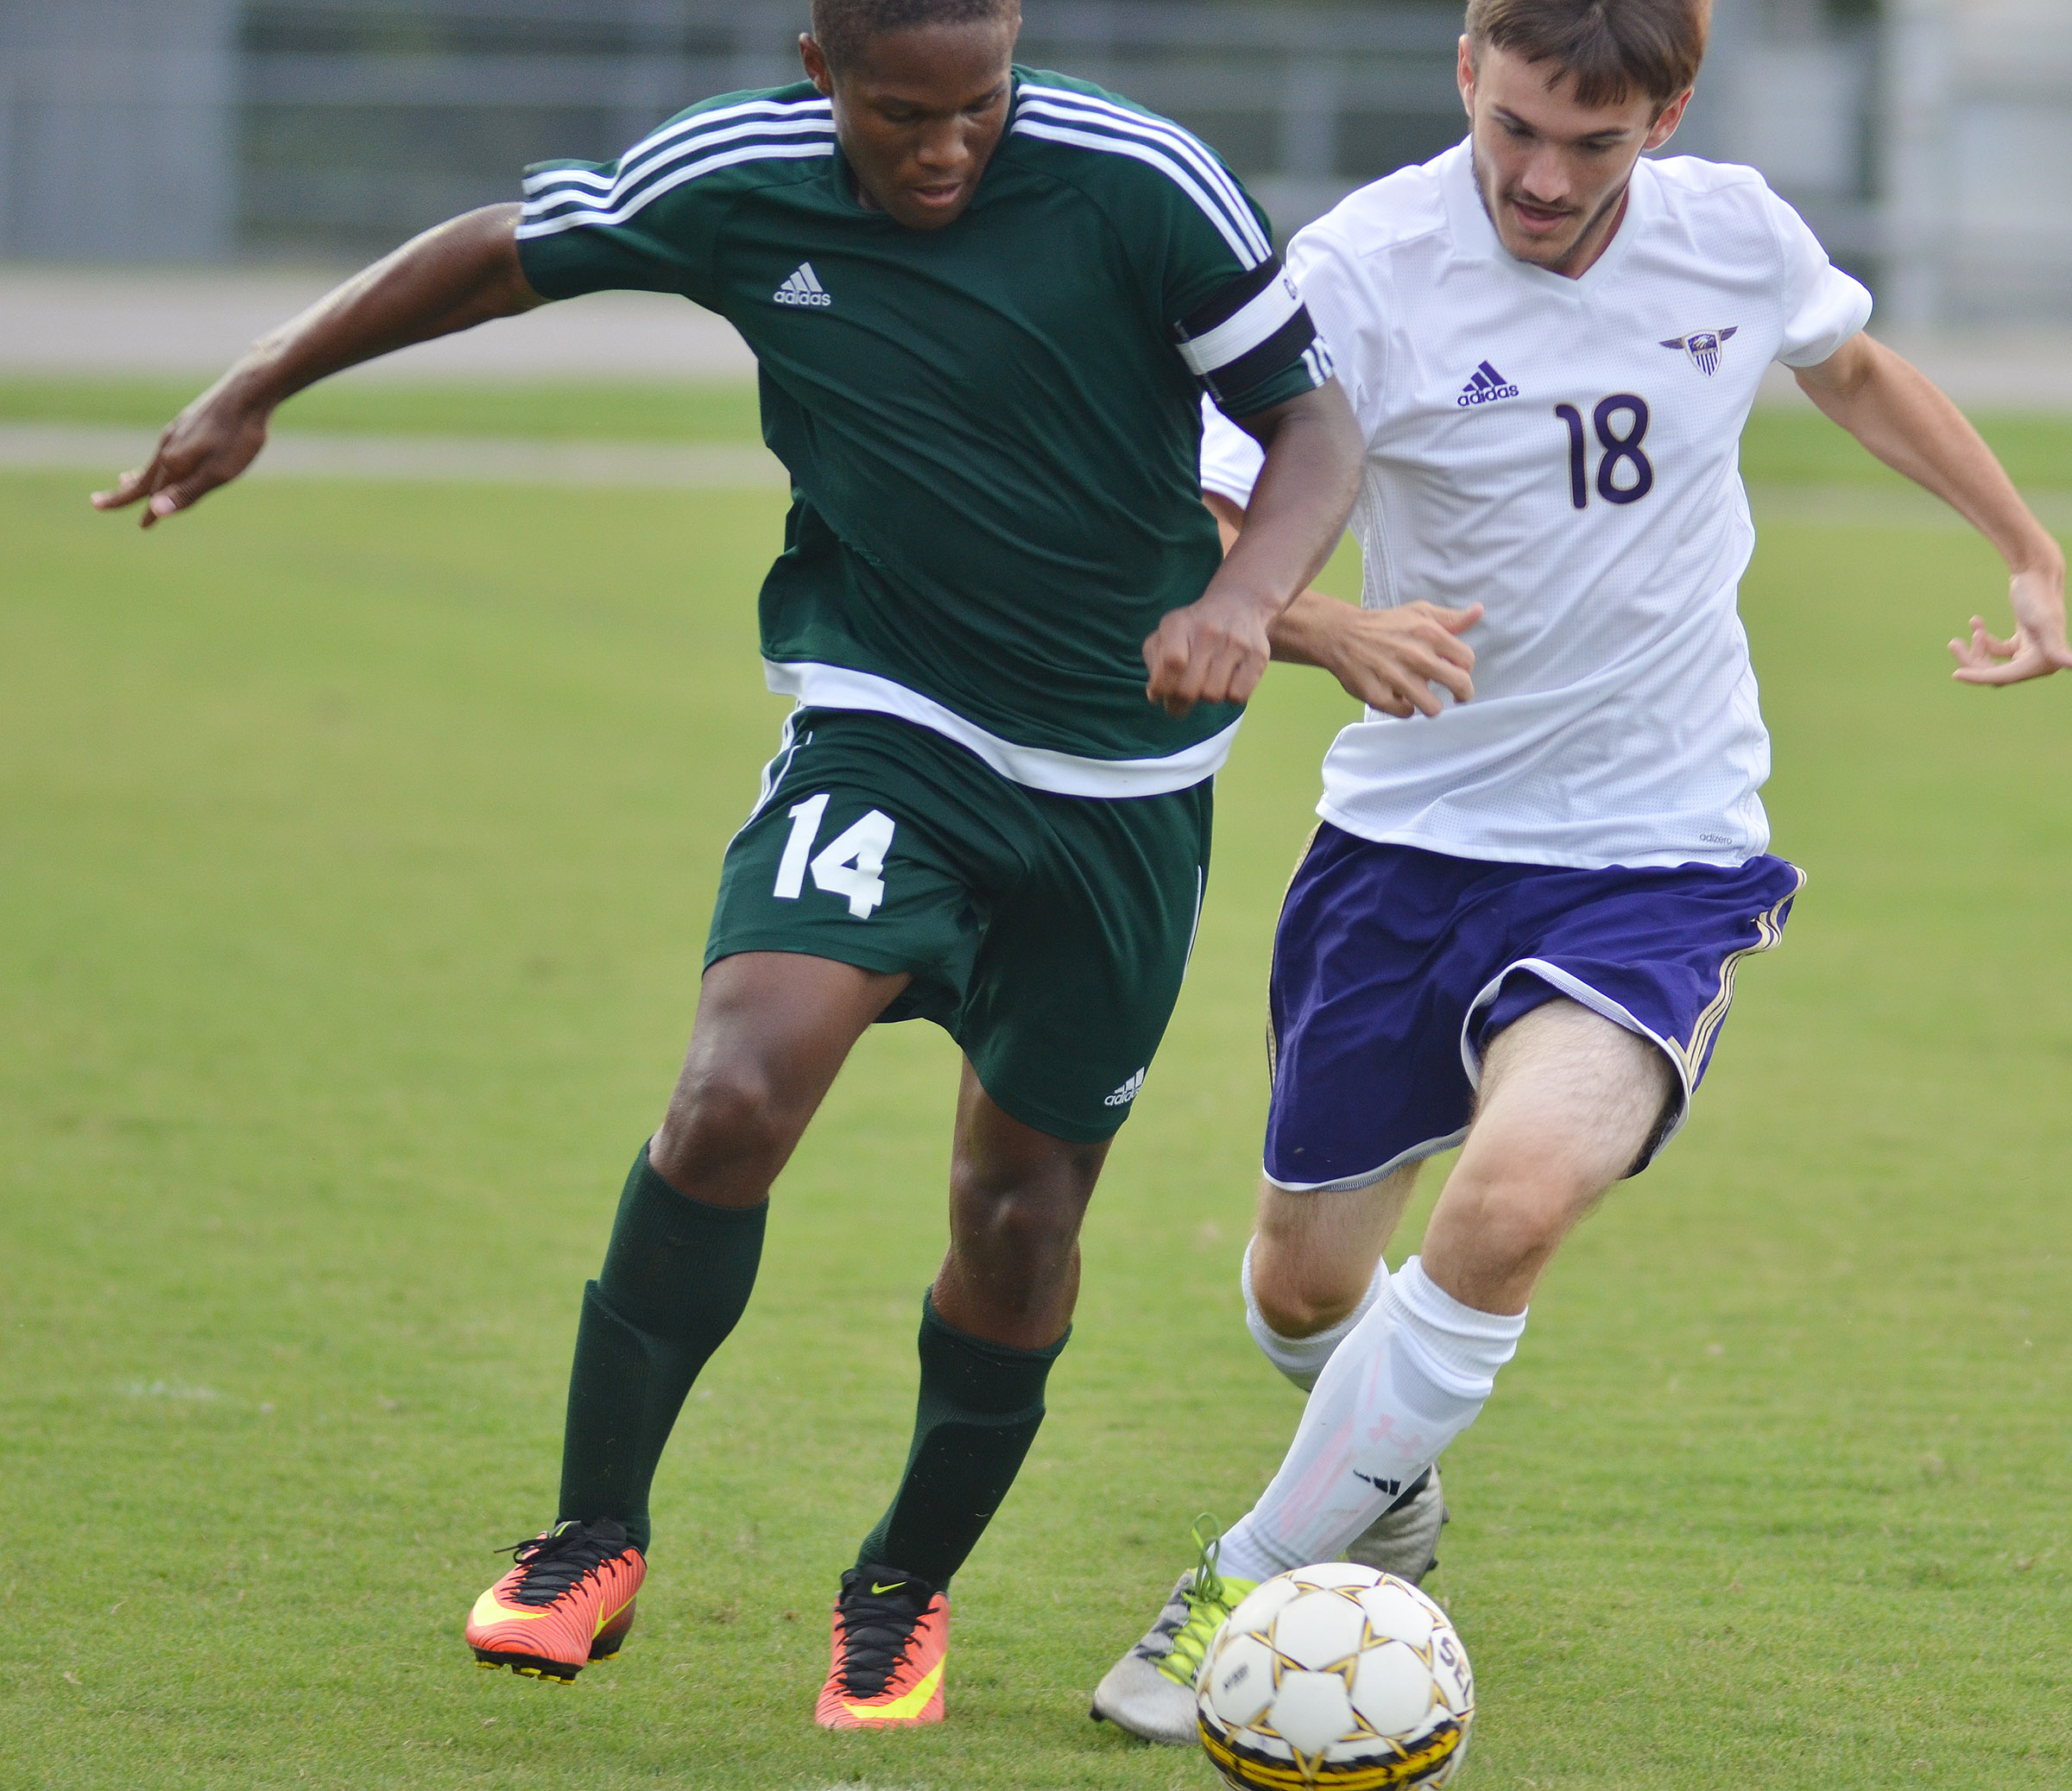 CHS senior Jackson Hunt kicks the ball.